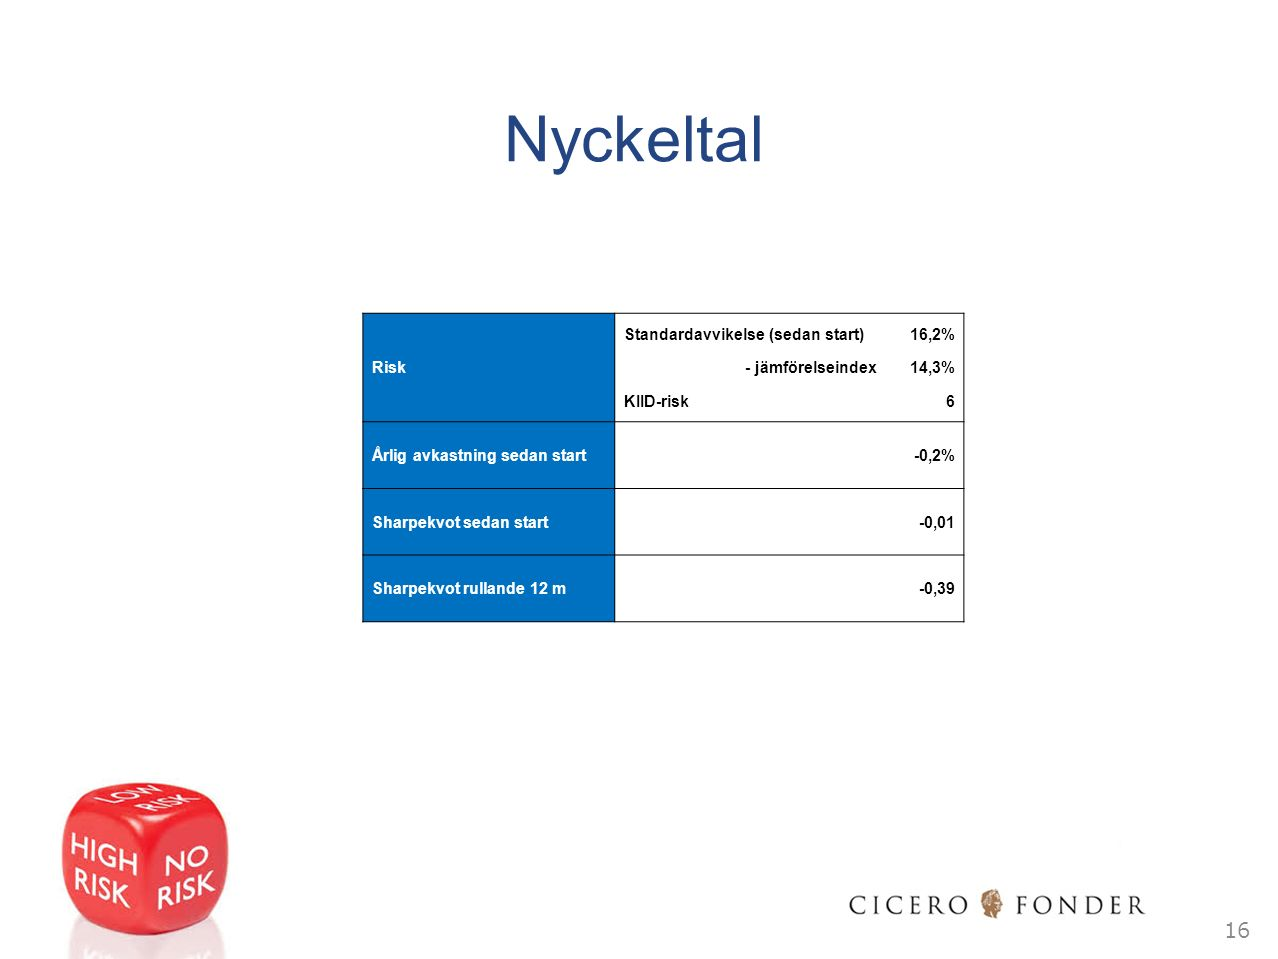 Nyckeltal 16 Standardavvikelse (sedan start)16,2% Risk - jämförelseindex14,3% KIID-risk6 Årlig avkastning sedan start -0,2% Sharpekvot sedan start -0,01 Sharpekvot rullande 12 m -0,39